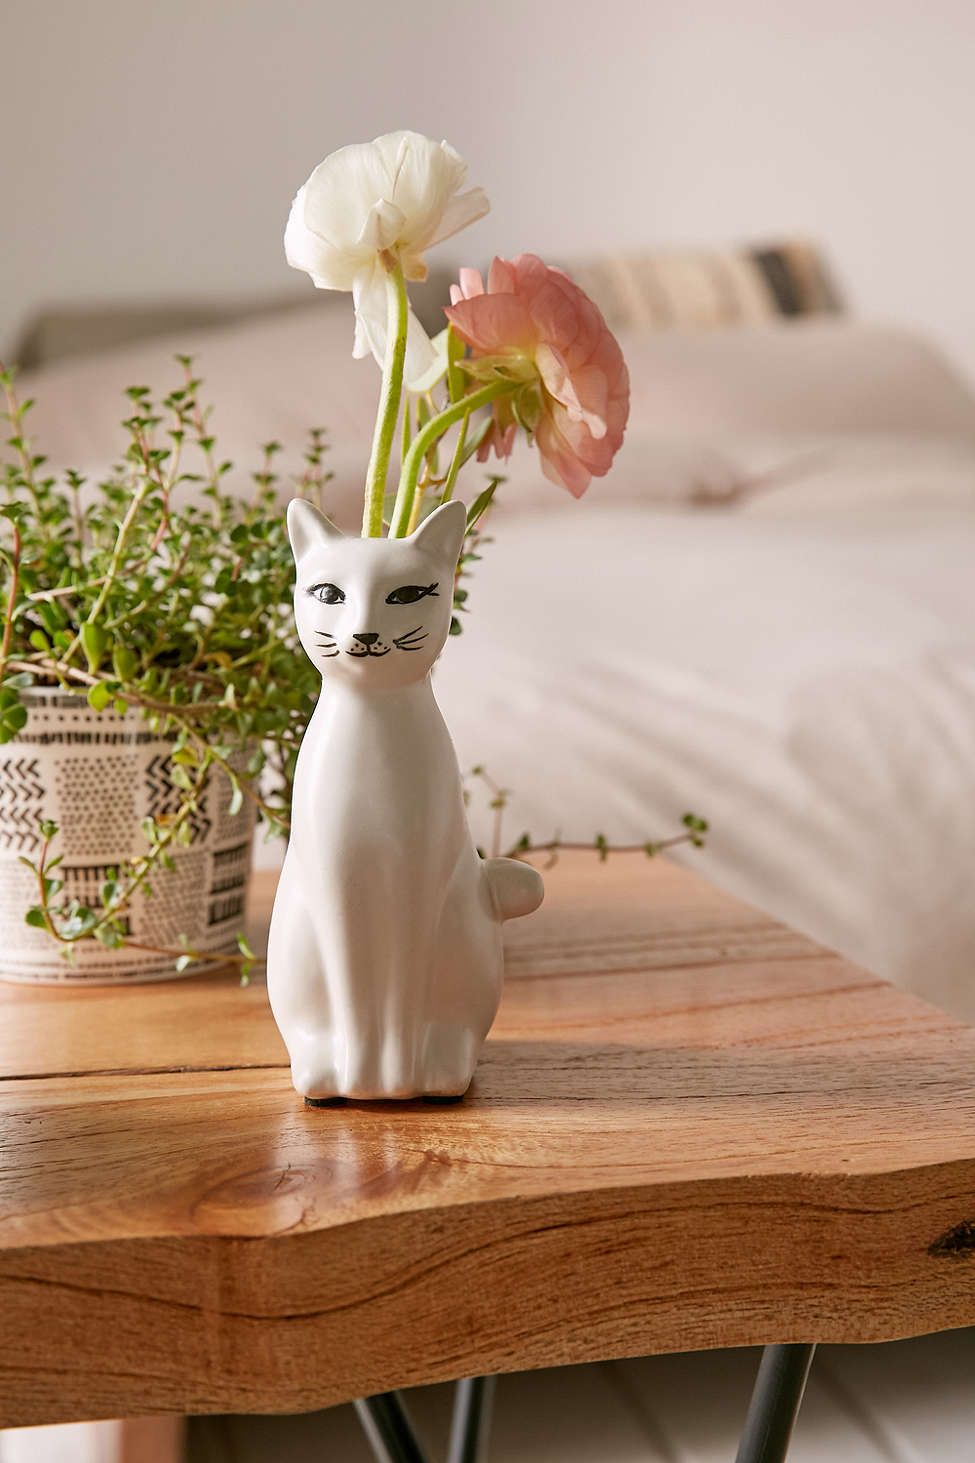 Kitty bud vase urban outfitters kitty and urban kitty bud vase reviewsmspy